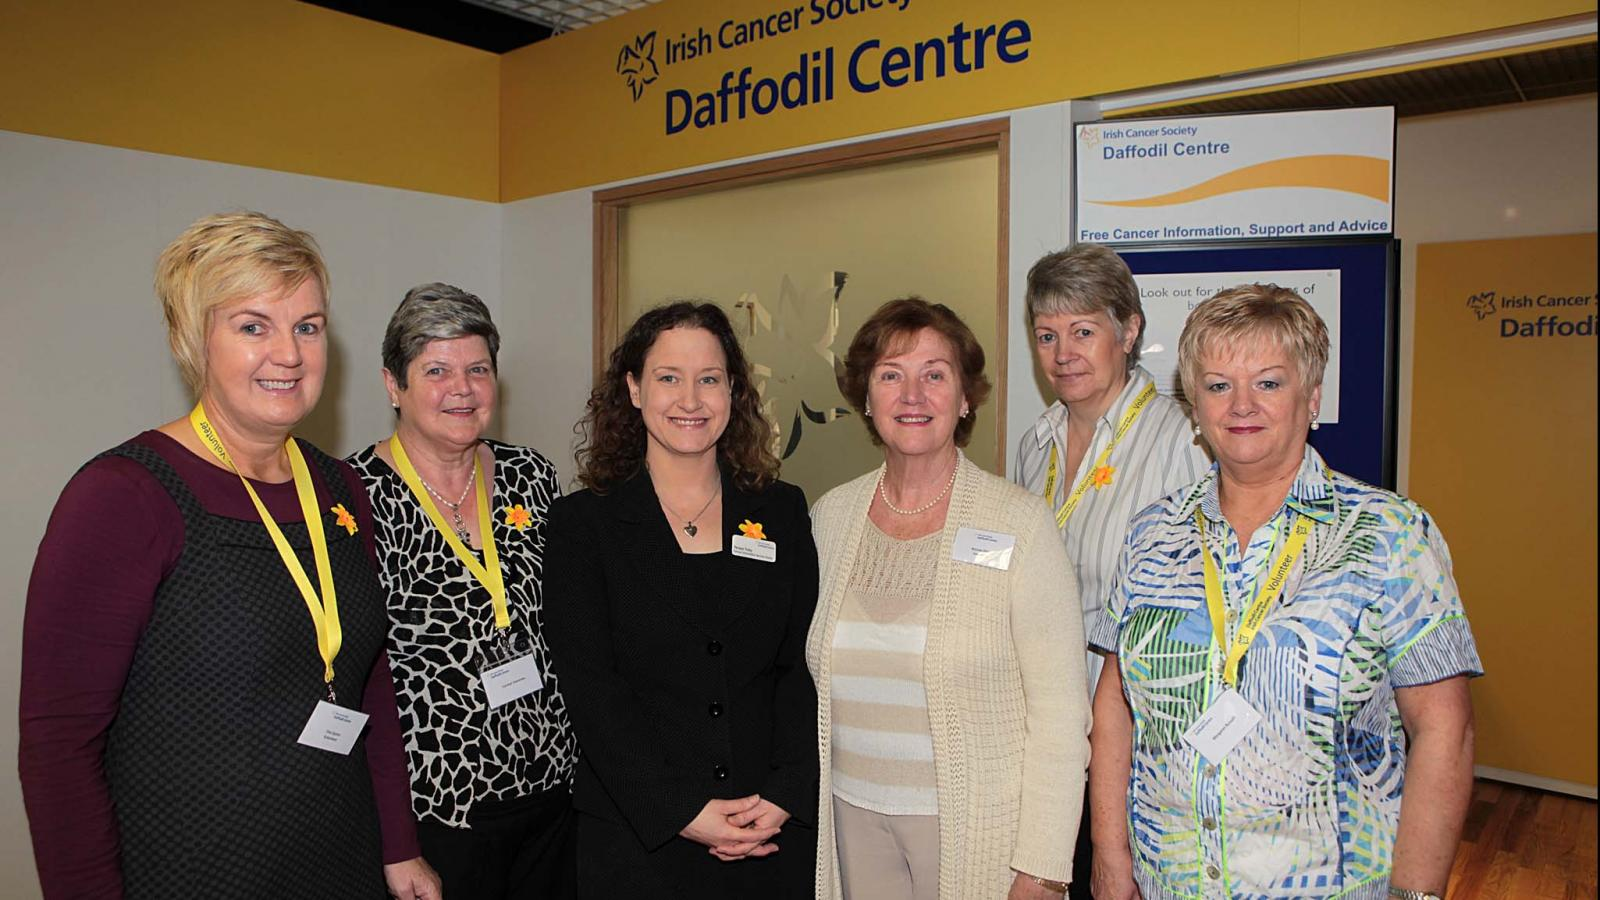 Daffodil Centre volunteers in front of a Daffodil Centre